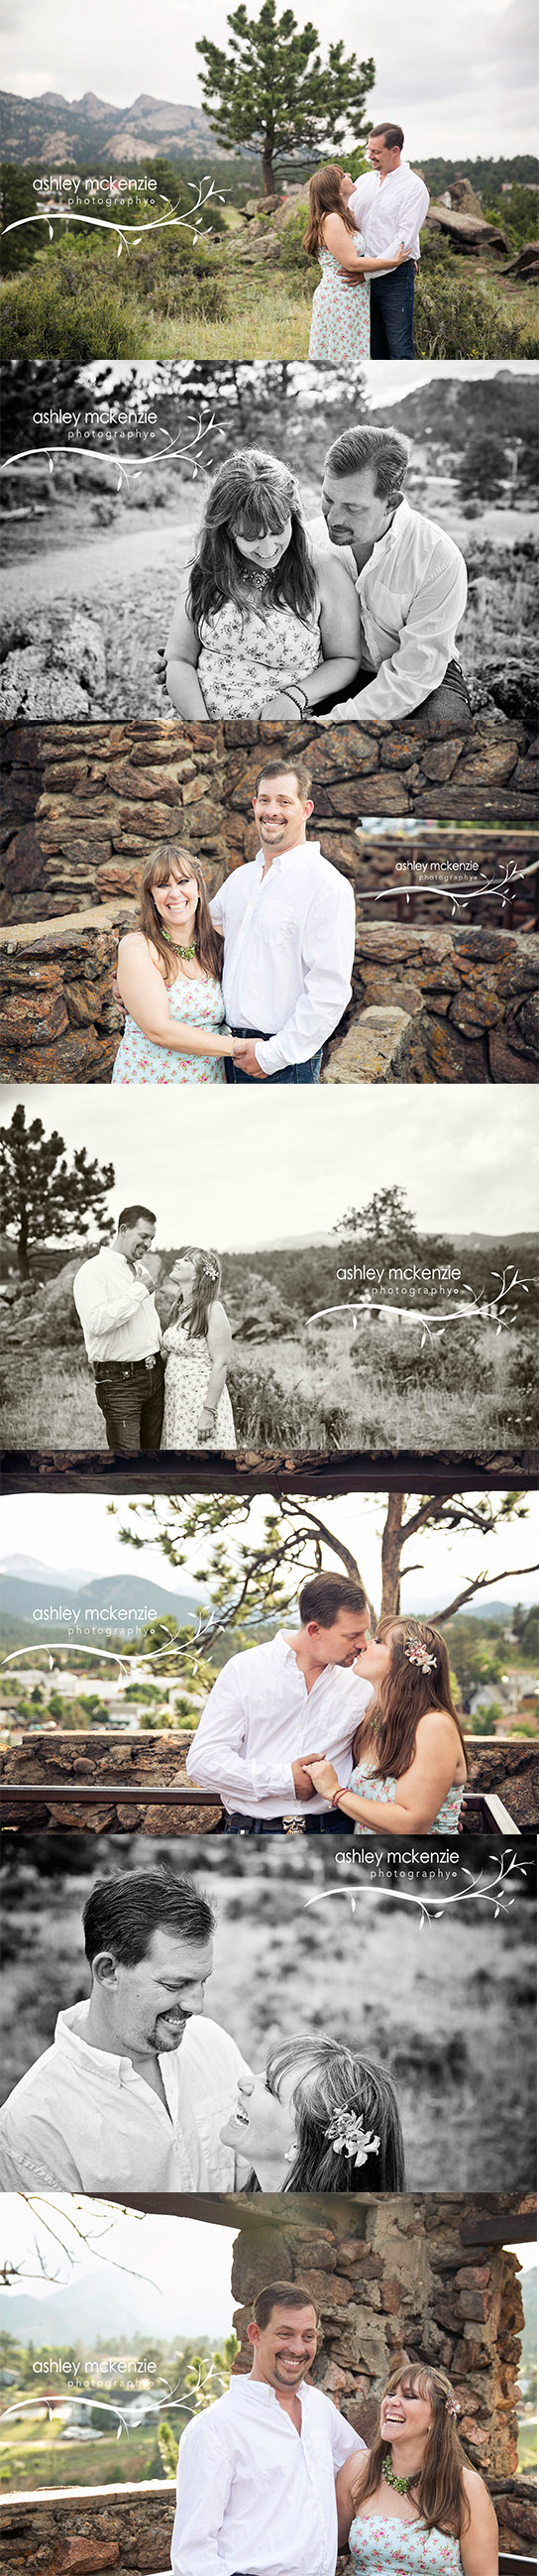 Engagement Photography Session By Ashley McKenzie Photography in Estes Park, CO